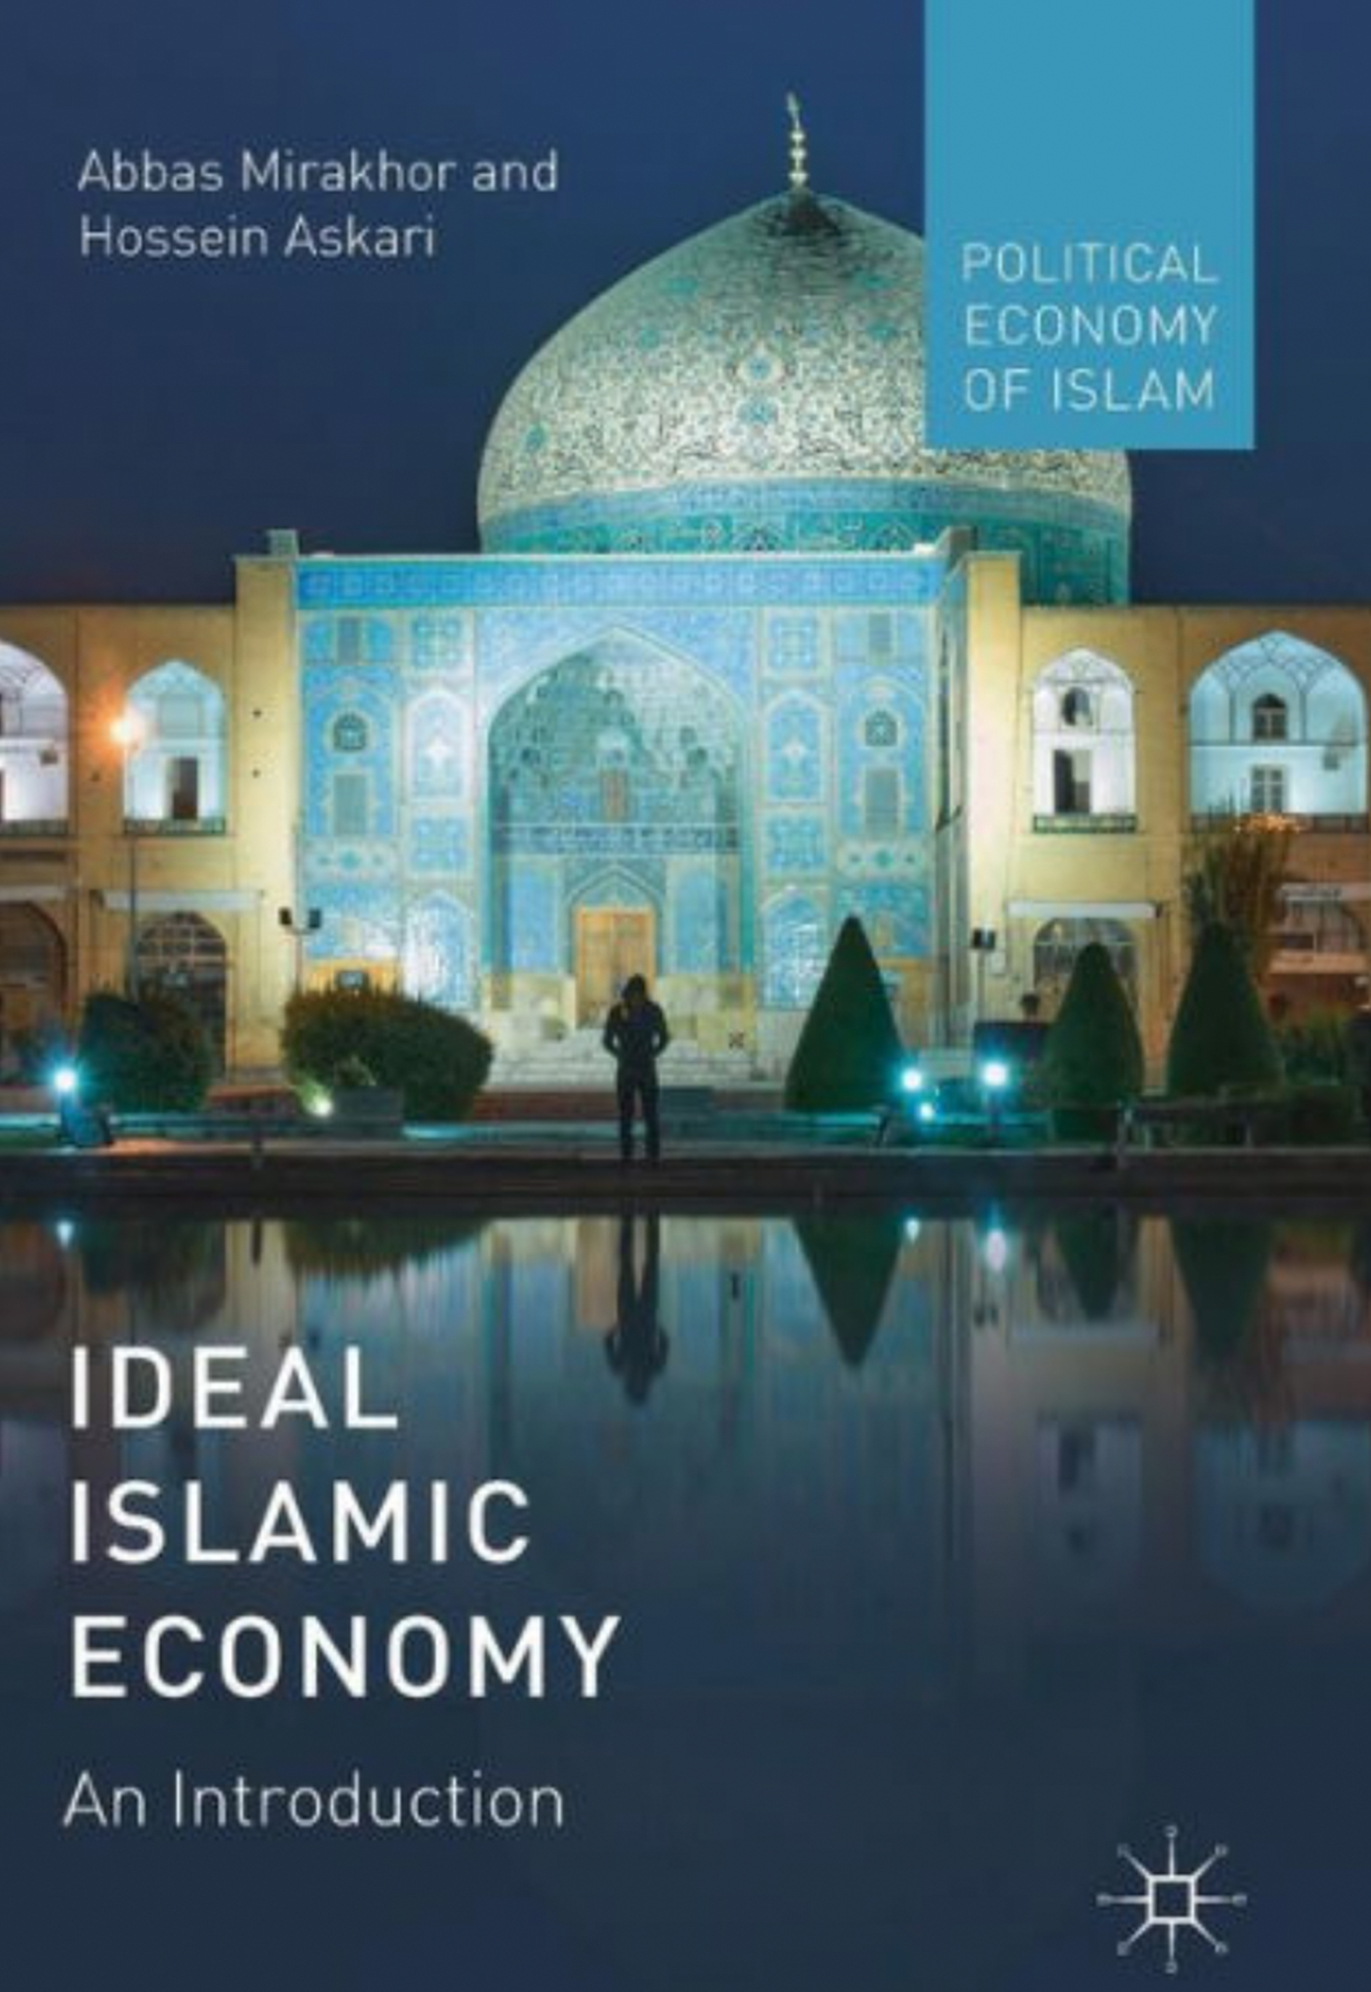 photo: text Abbas Mirakhor and Hossein Askari, Political Economy of Islam, Ideal Islamic Economy An Introduction. A man stands in front of a mosque and a fountain at night. His and the mosque's reflection is visible in the water.